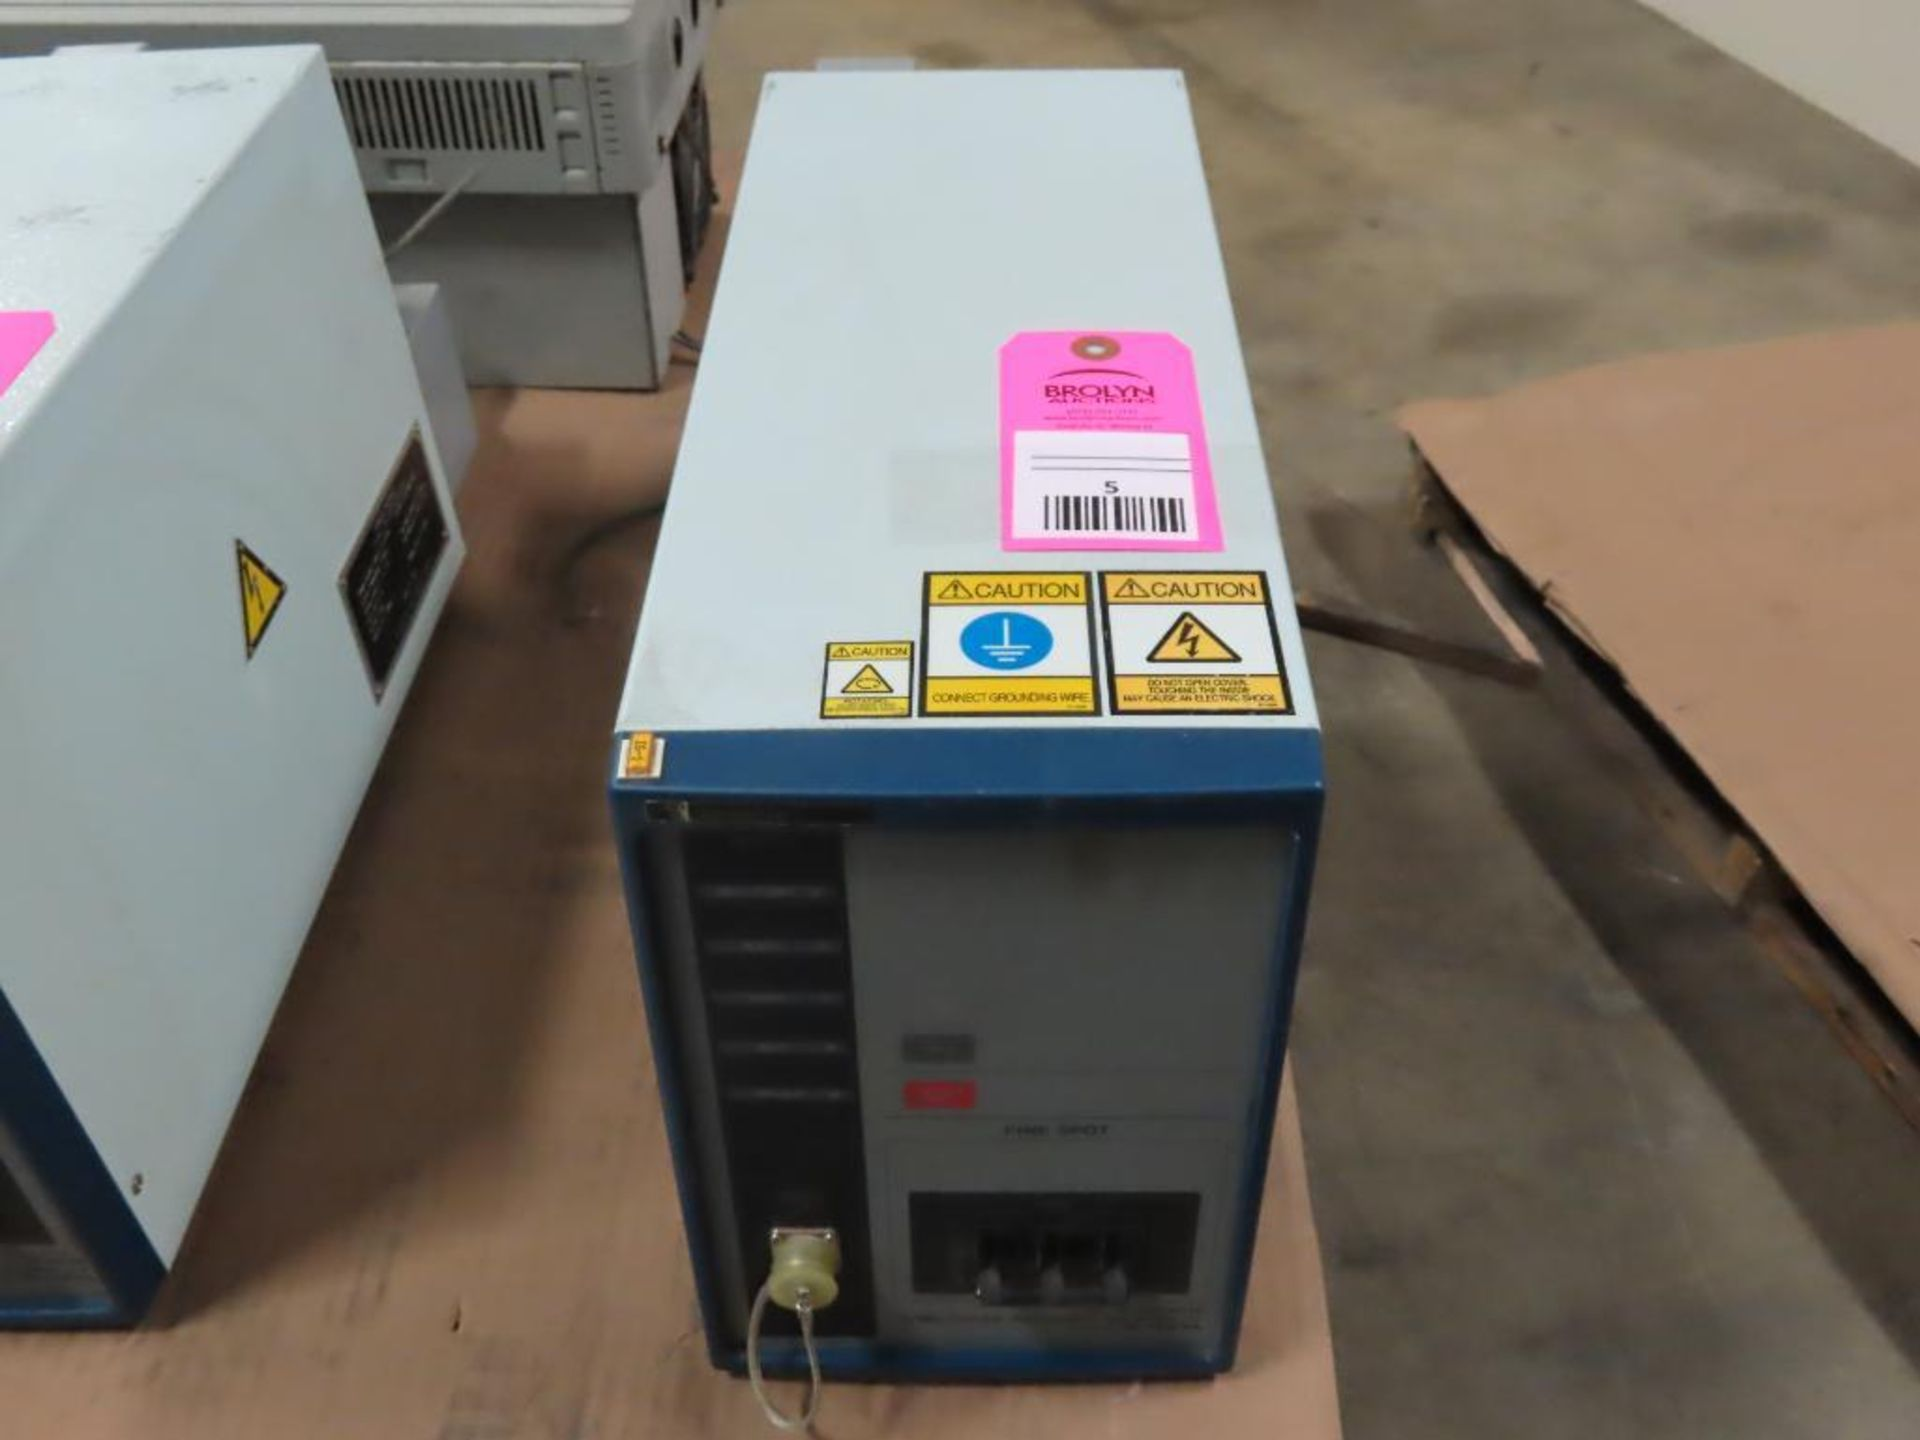 Lot 5 - Miyachi Technos welding power supply type IS-427A-00-00, 27.1kVA max, 540v output.